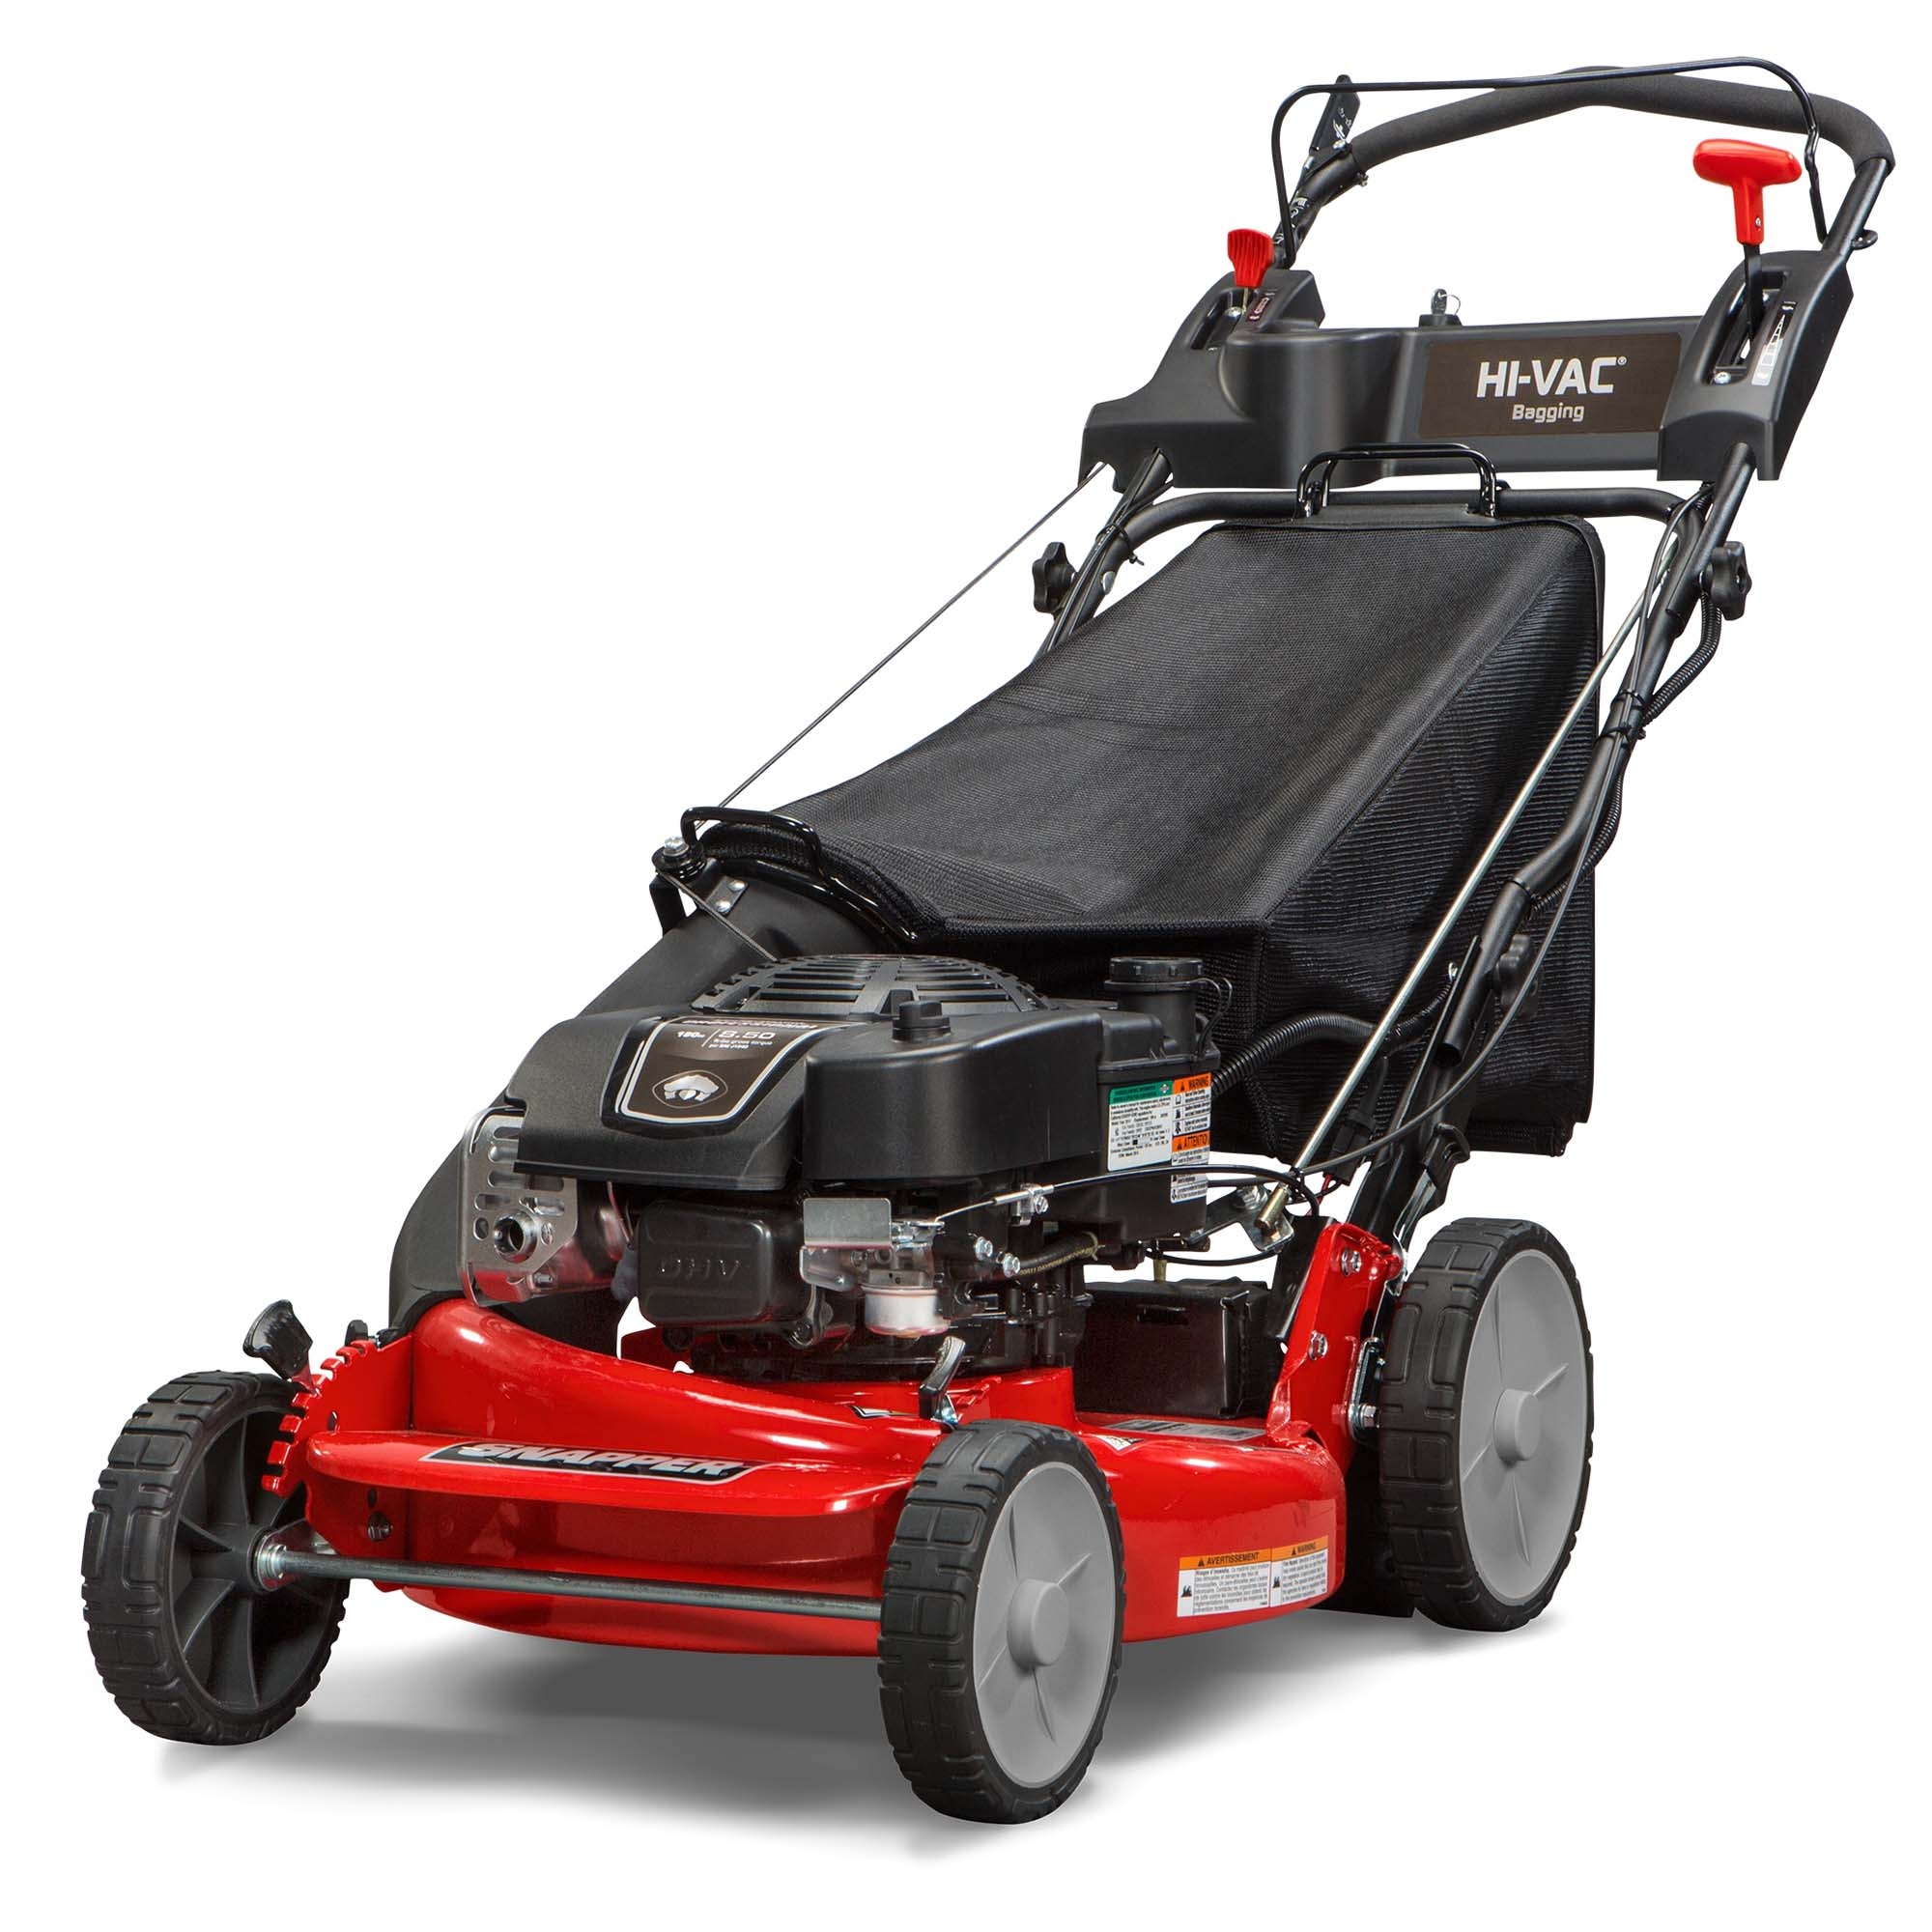 Snapper HI VAC 21 in. Self Propelled Electric Start Bag Lawn Mower | MOW-7800982 by Snapper